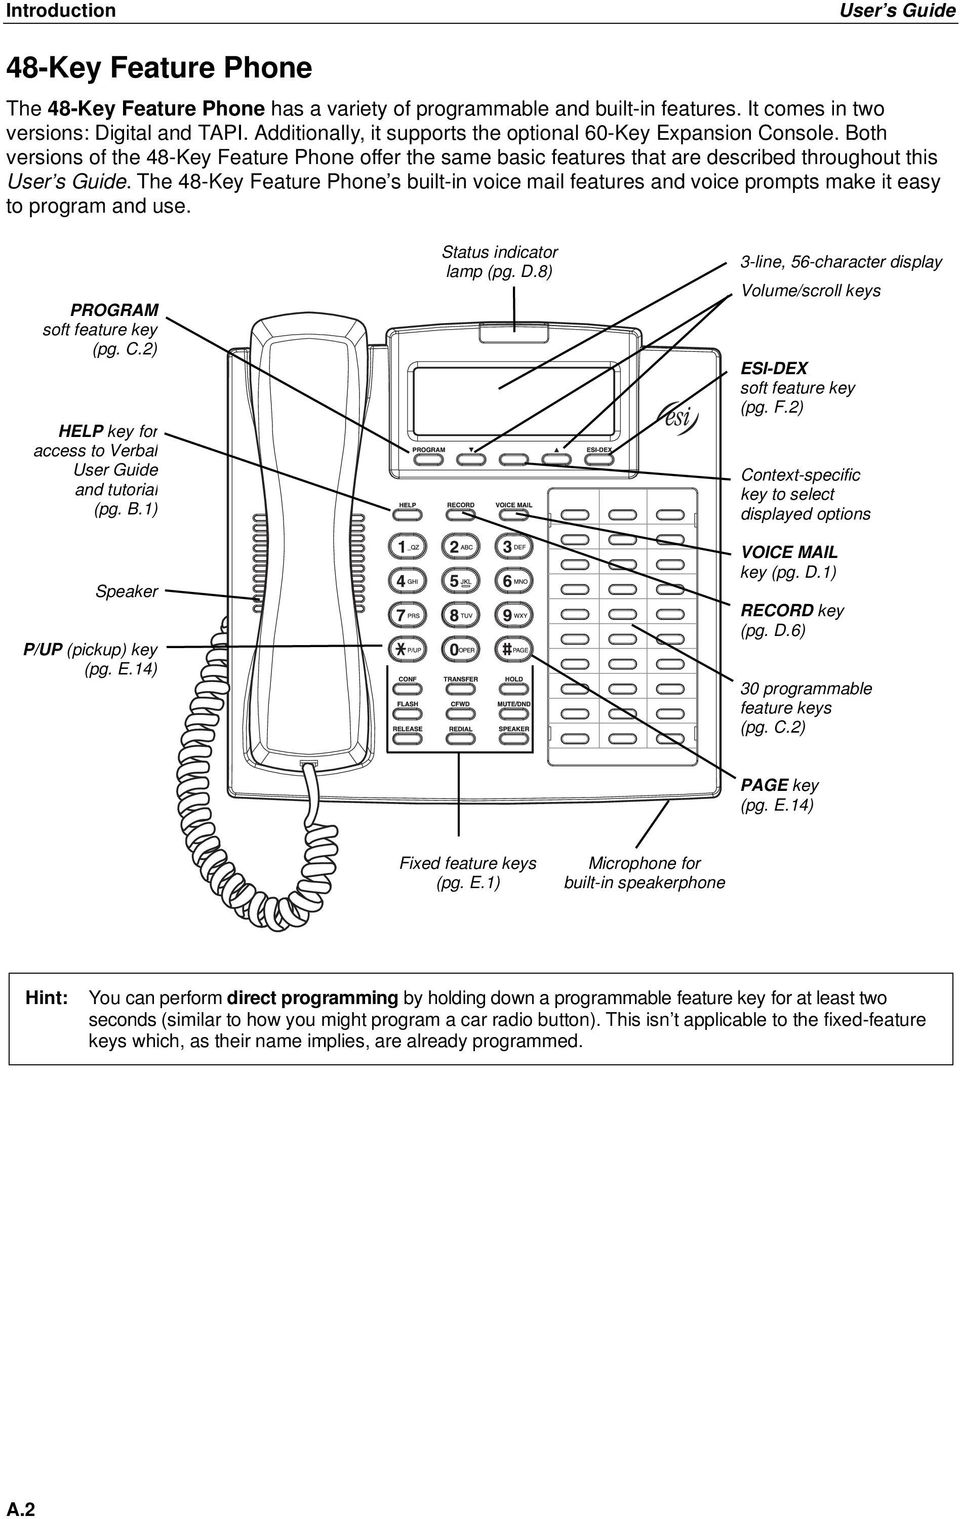 The 48-Key Feature Phone s built-in voice mail features and voice prompts make it easy to program and use. PROGRAM soft feature key (pg. C.2) HELP key for access to Verbal User Guide and tutorial (pg.